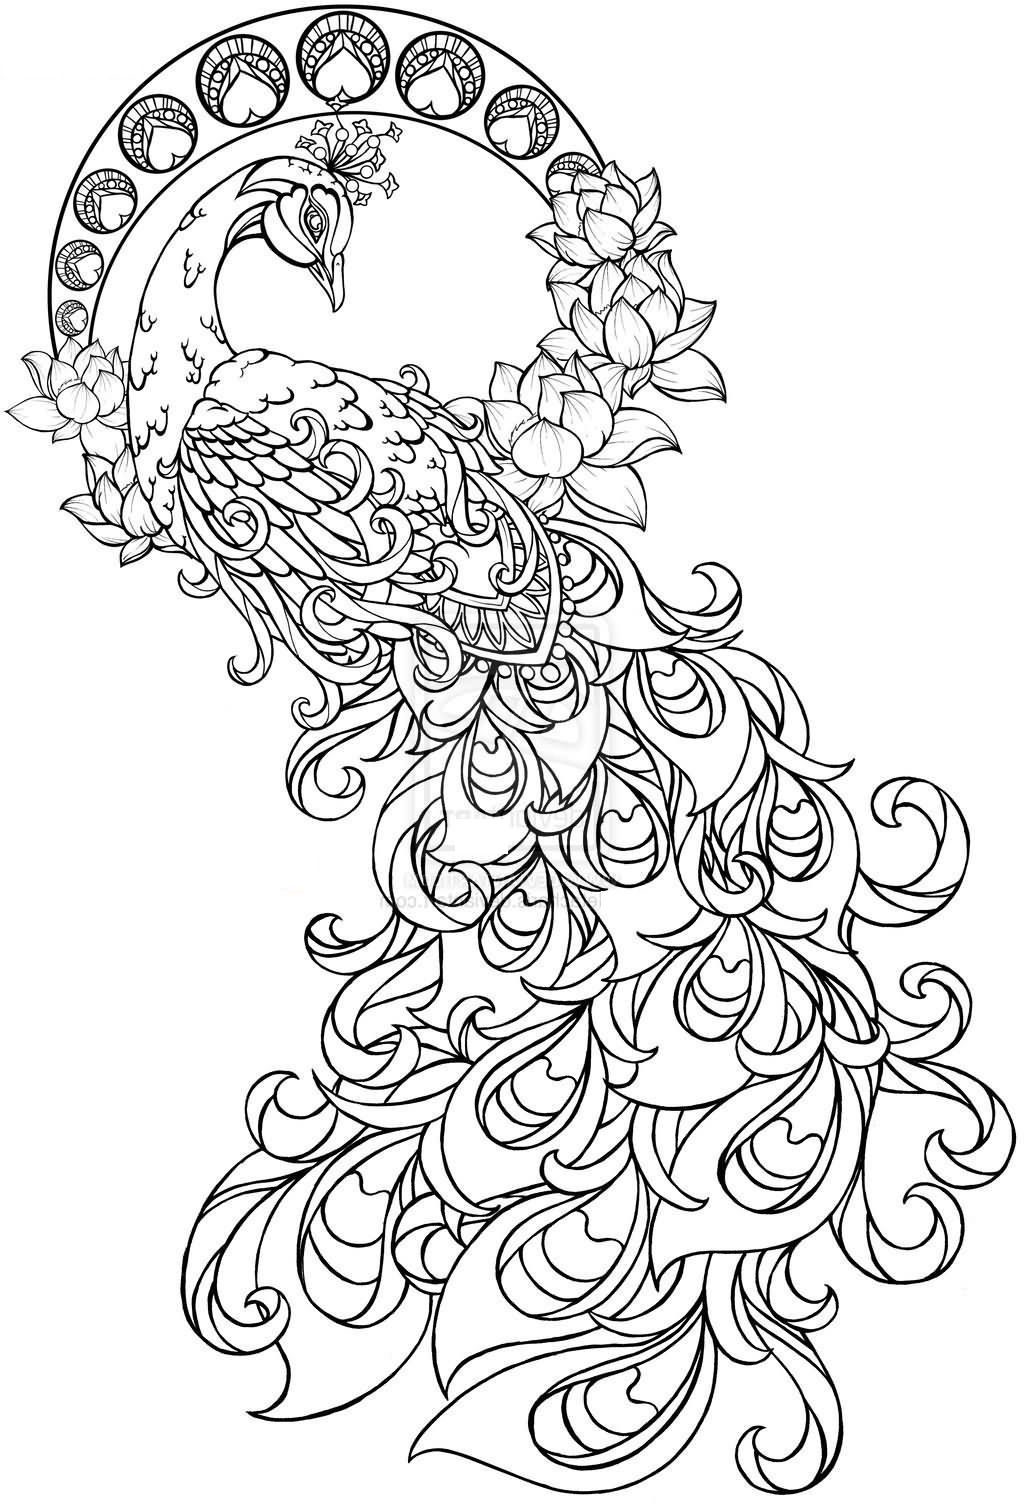 coloring outline image of peacock image from httpwwwkidscolouringcoukwp content image of coloring outline peacock